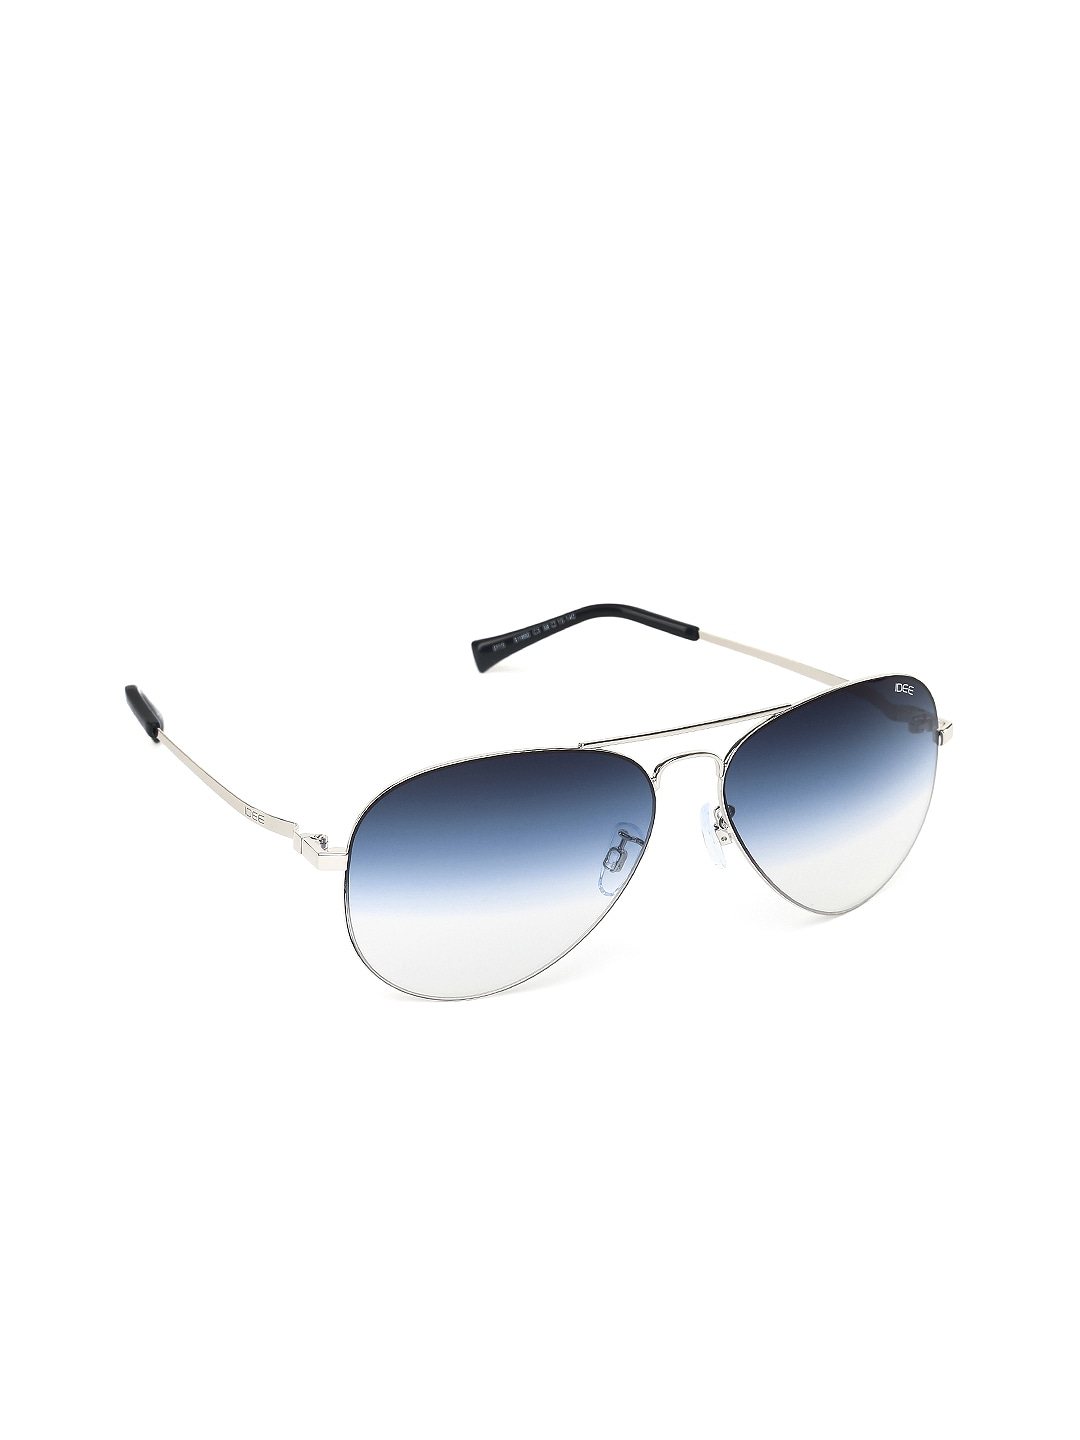 5240c5f9a83 I dee ids1950c3sg-silver Idee Unisex Aviator Sunglasses S1950 C3 58- Price  in India